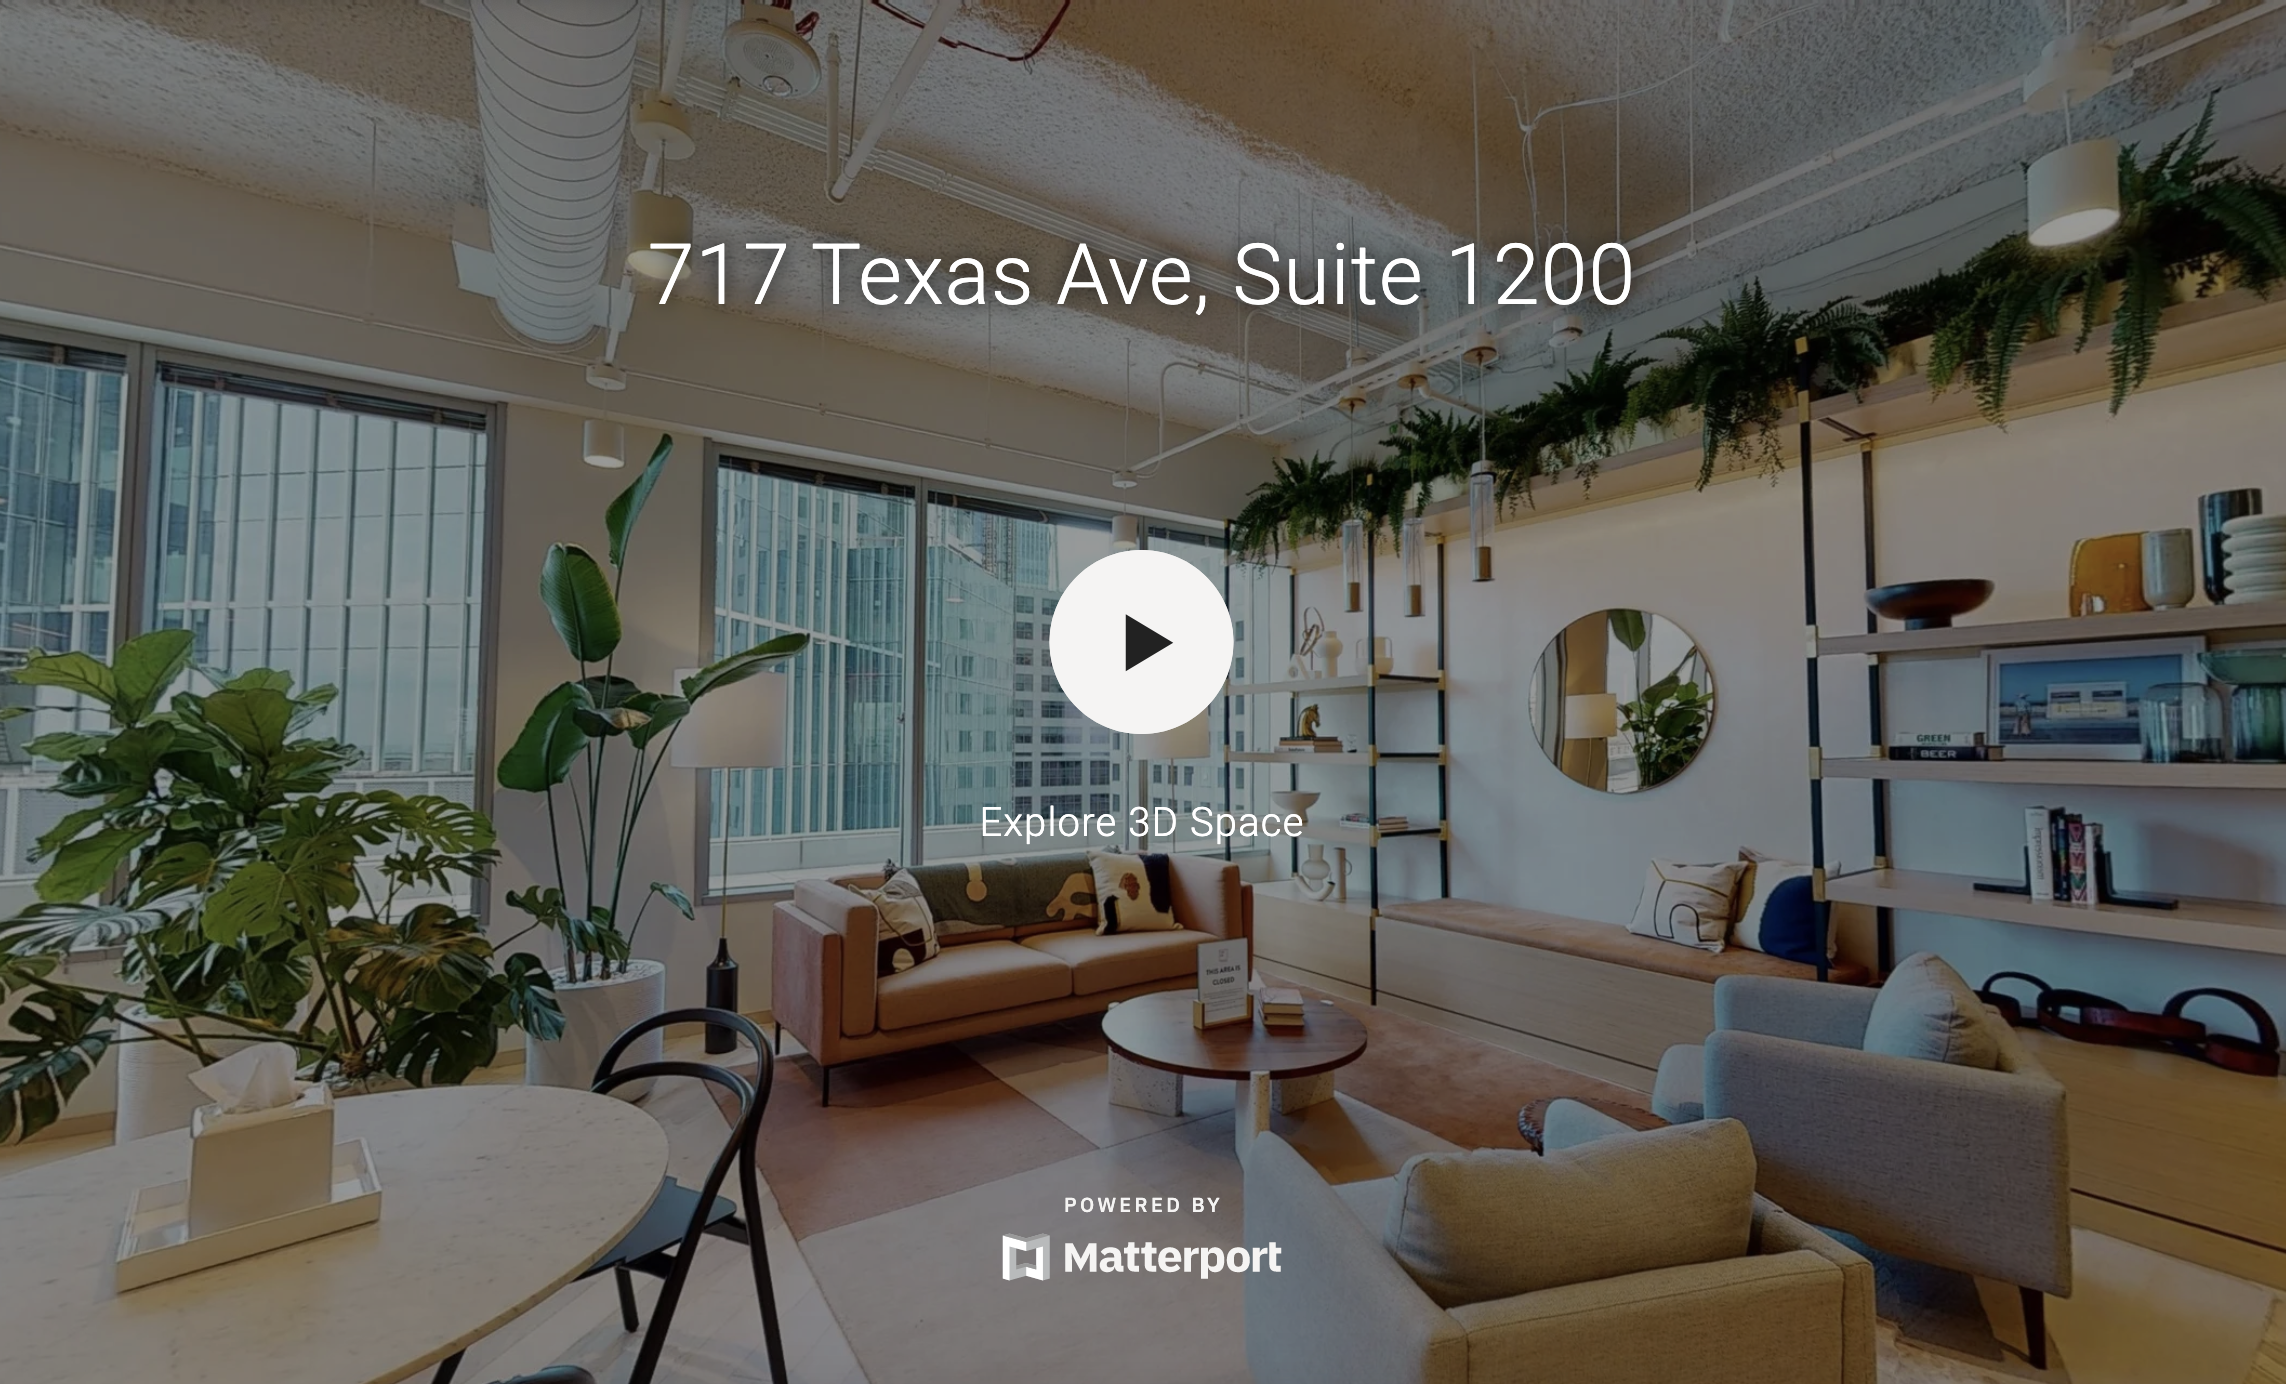 Take A Virtual Tour (Bottom of Page- Hyperlink to Matterport Tour Link)